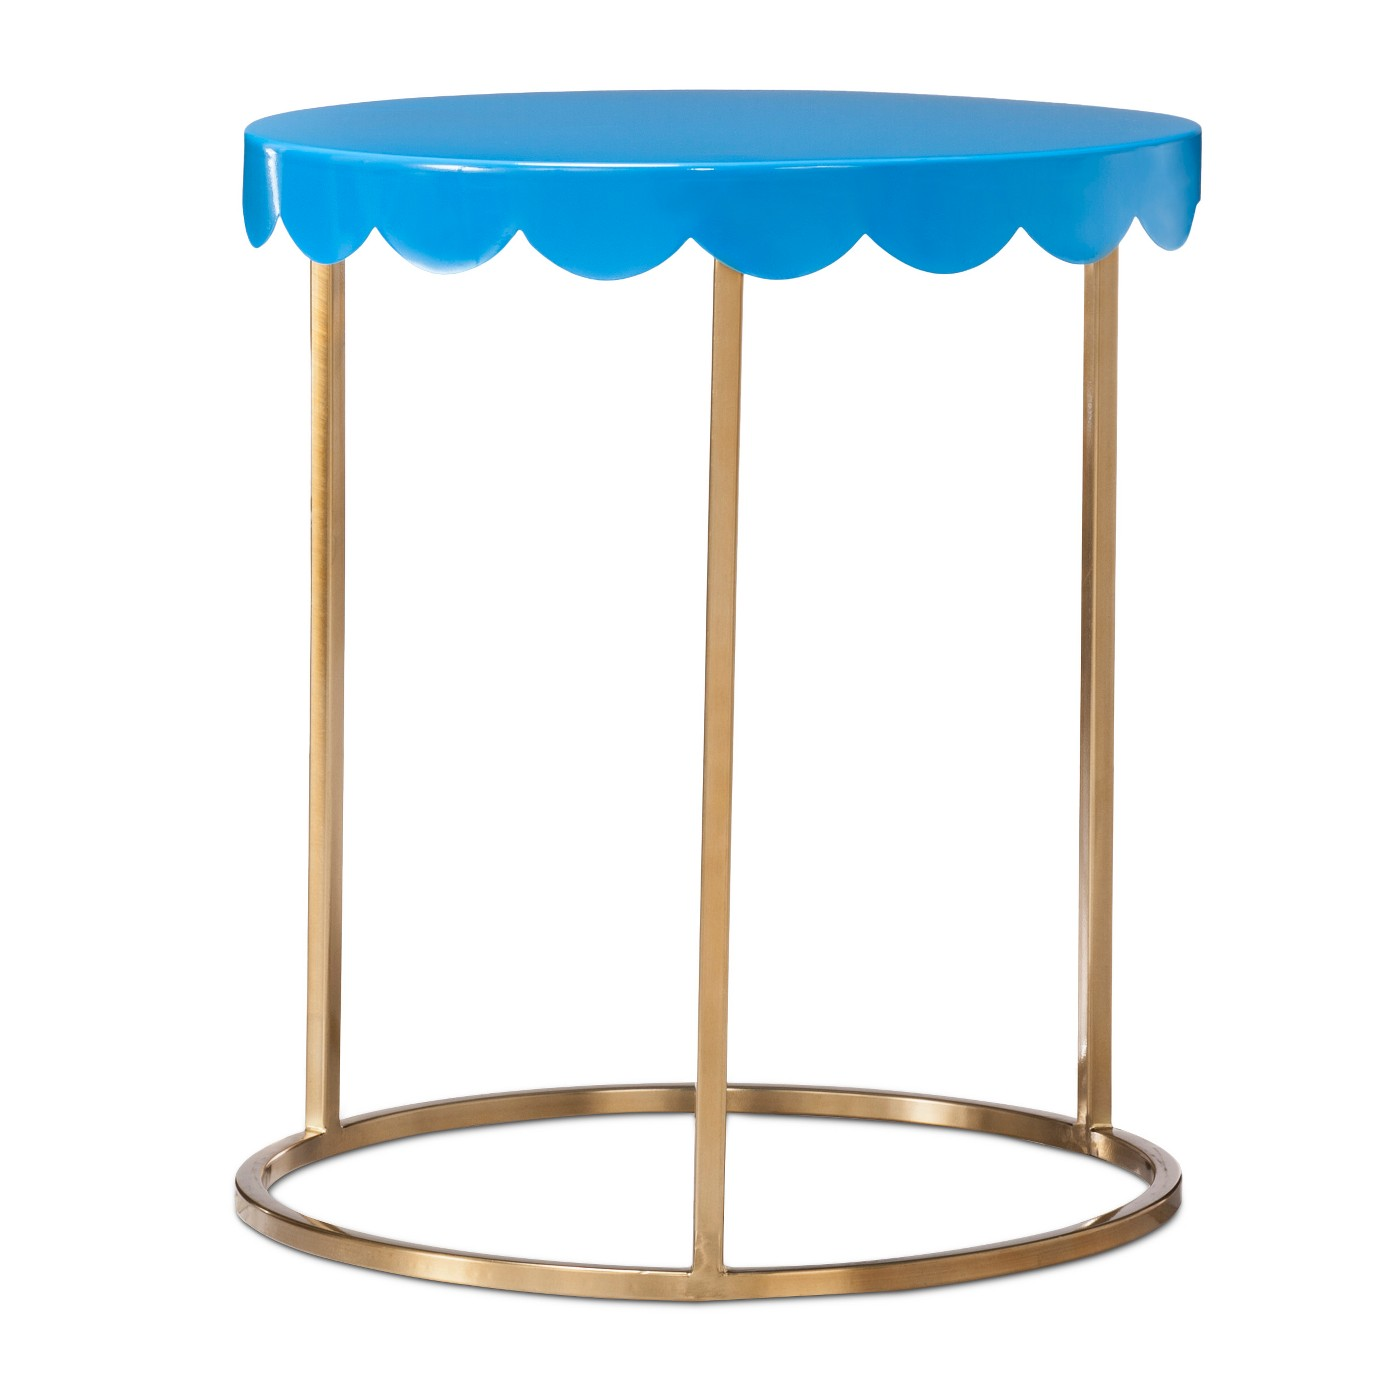 target pillowfort kids accent table side night stand attach scalloped vivid blue hall decor sitting room furniture pieces fall placemats and napkins black patio drop aluminum